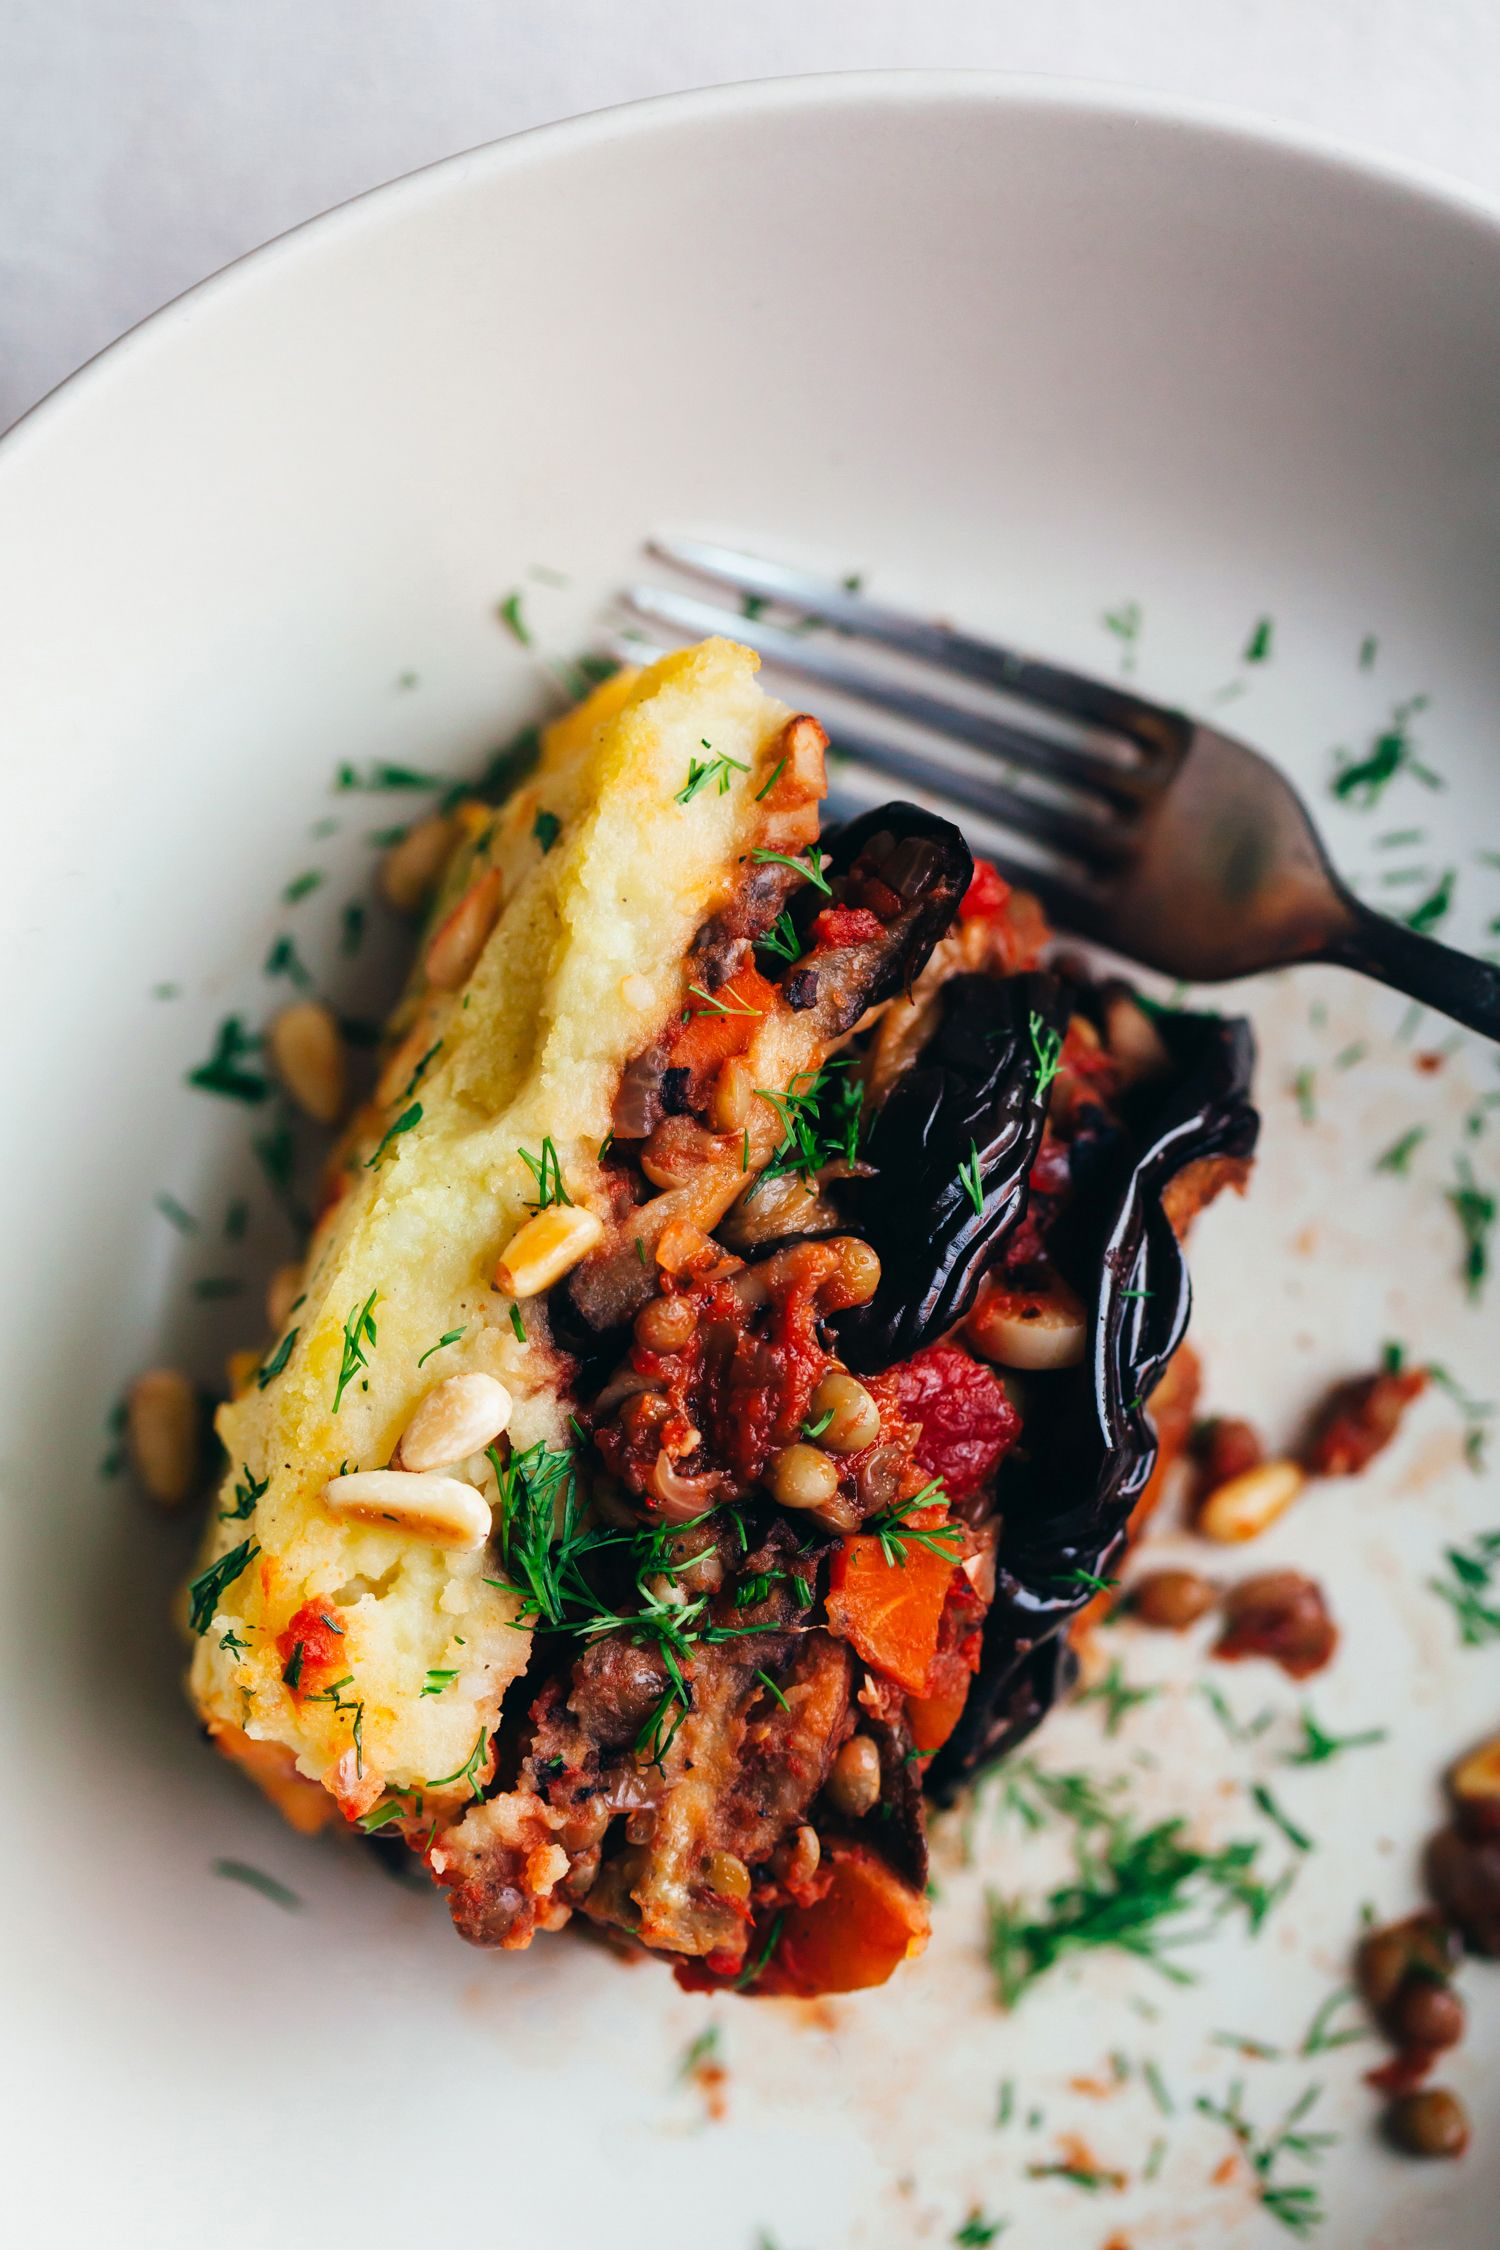 Vegan Lentil Moussaka Golubka Kitchen Recipe Vegan Dishes Vegan Moussaka Vegan Recipes